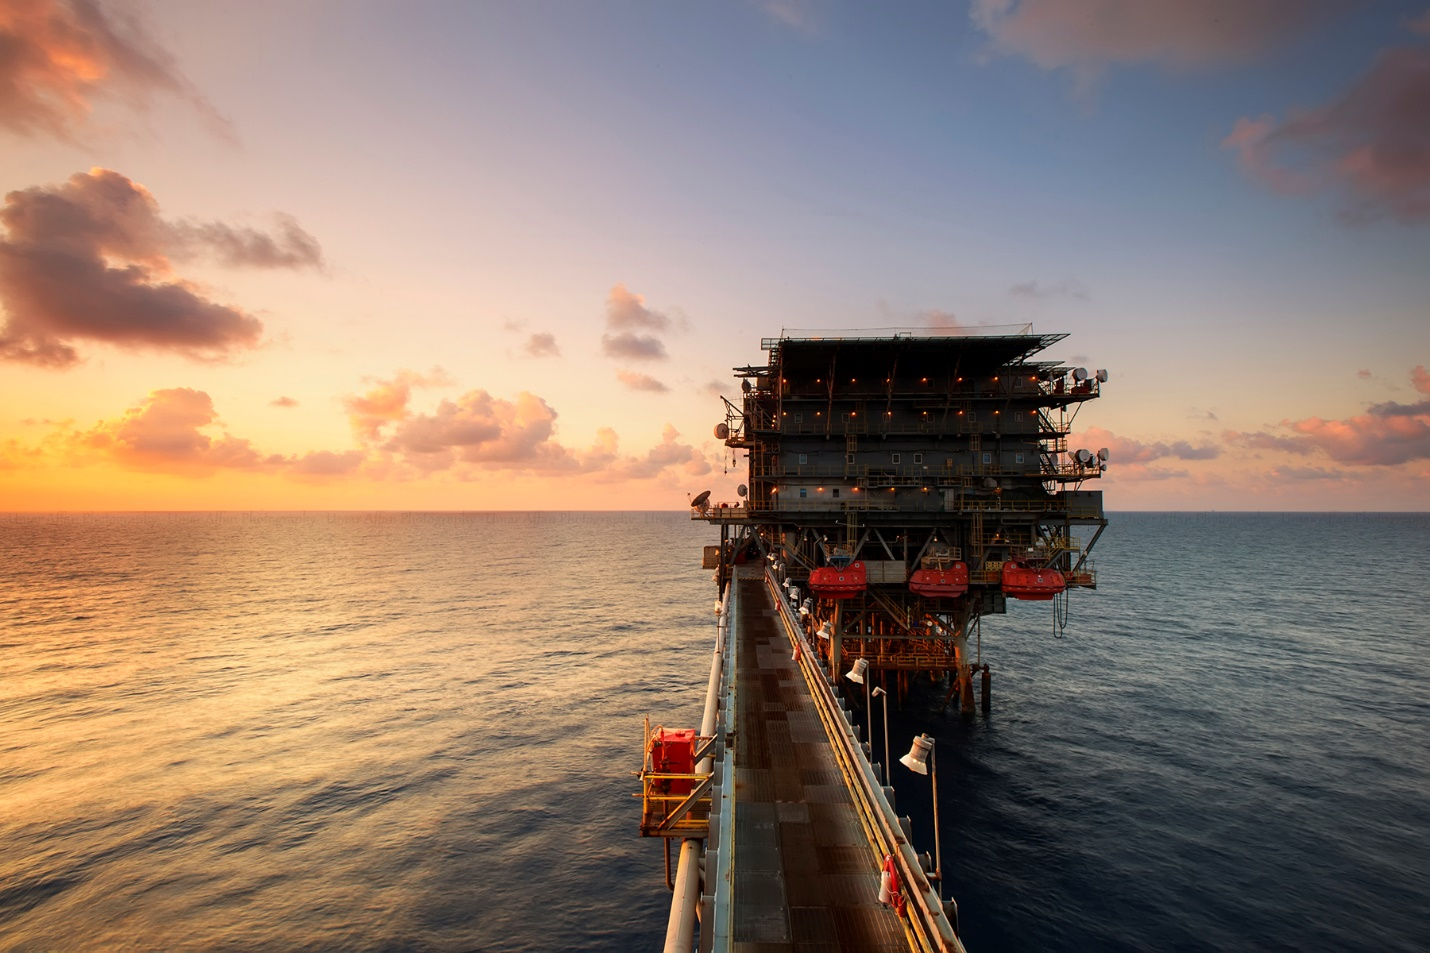 Pecos, Texa Offshore Oil Rig Accident Injury Lawyer